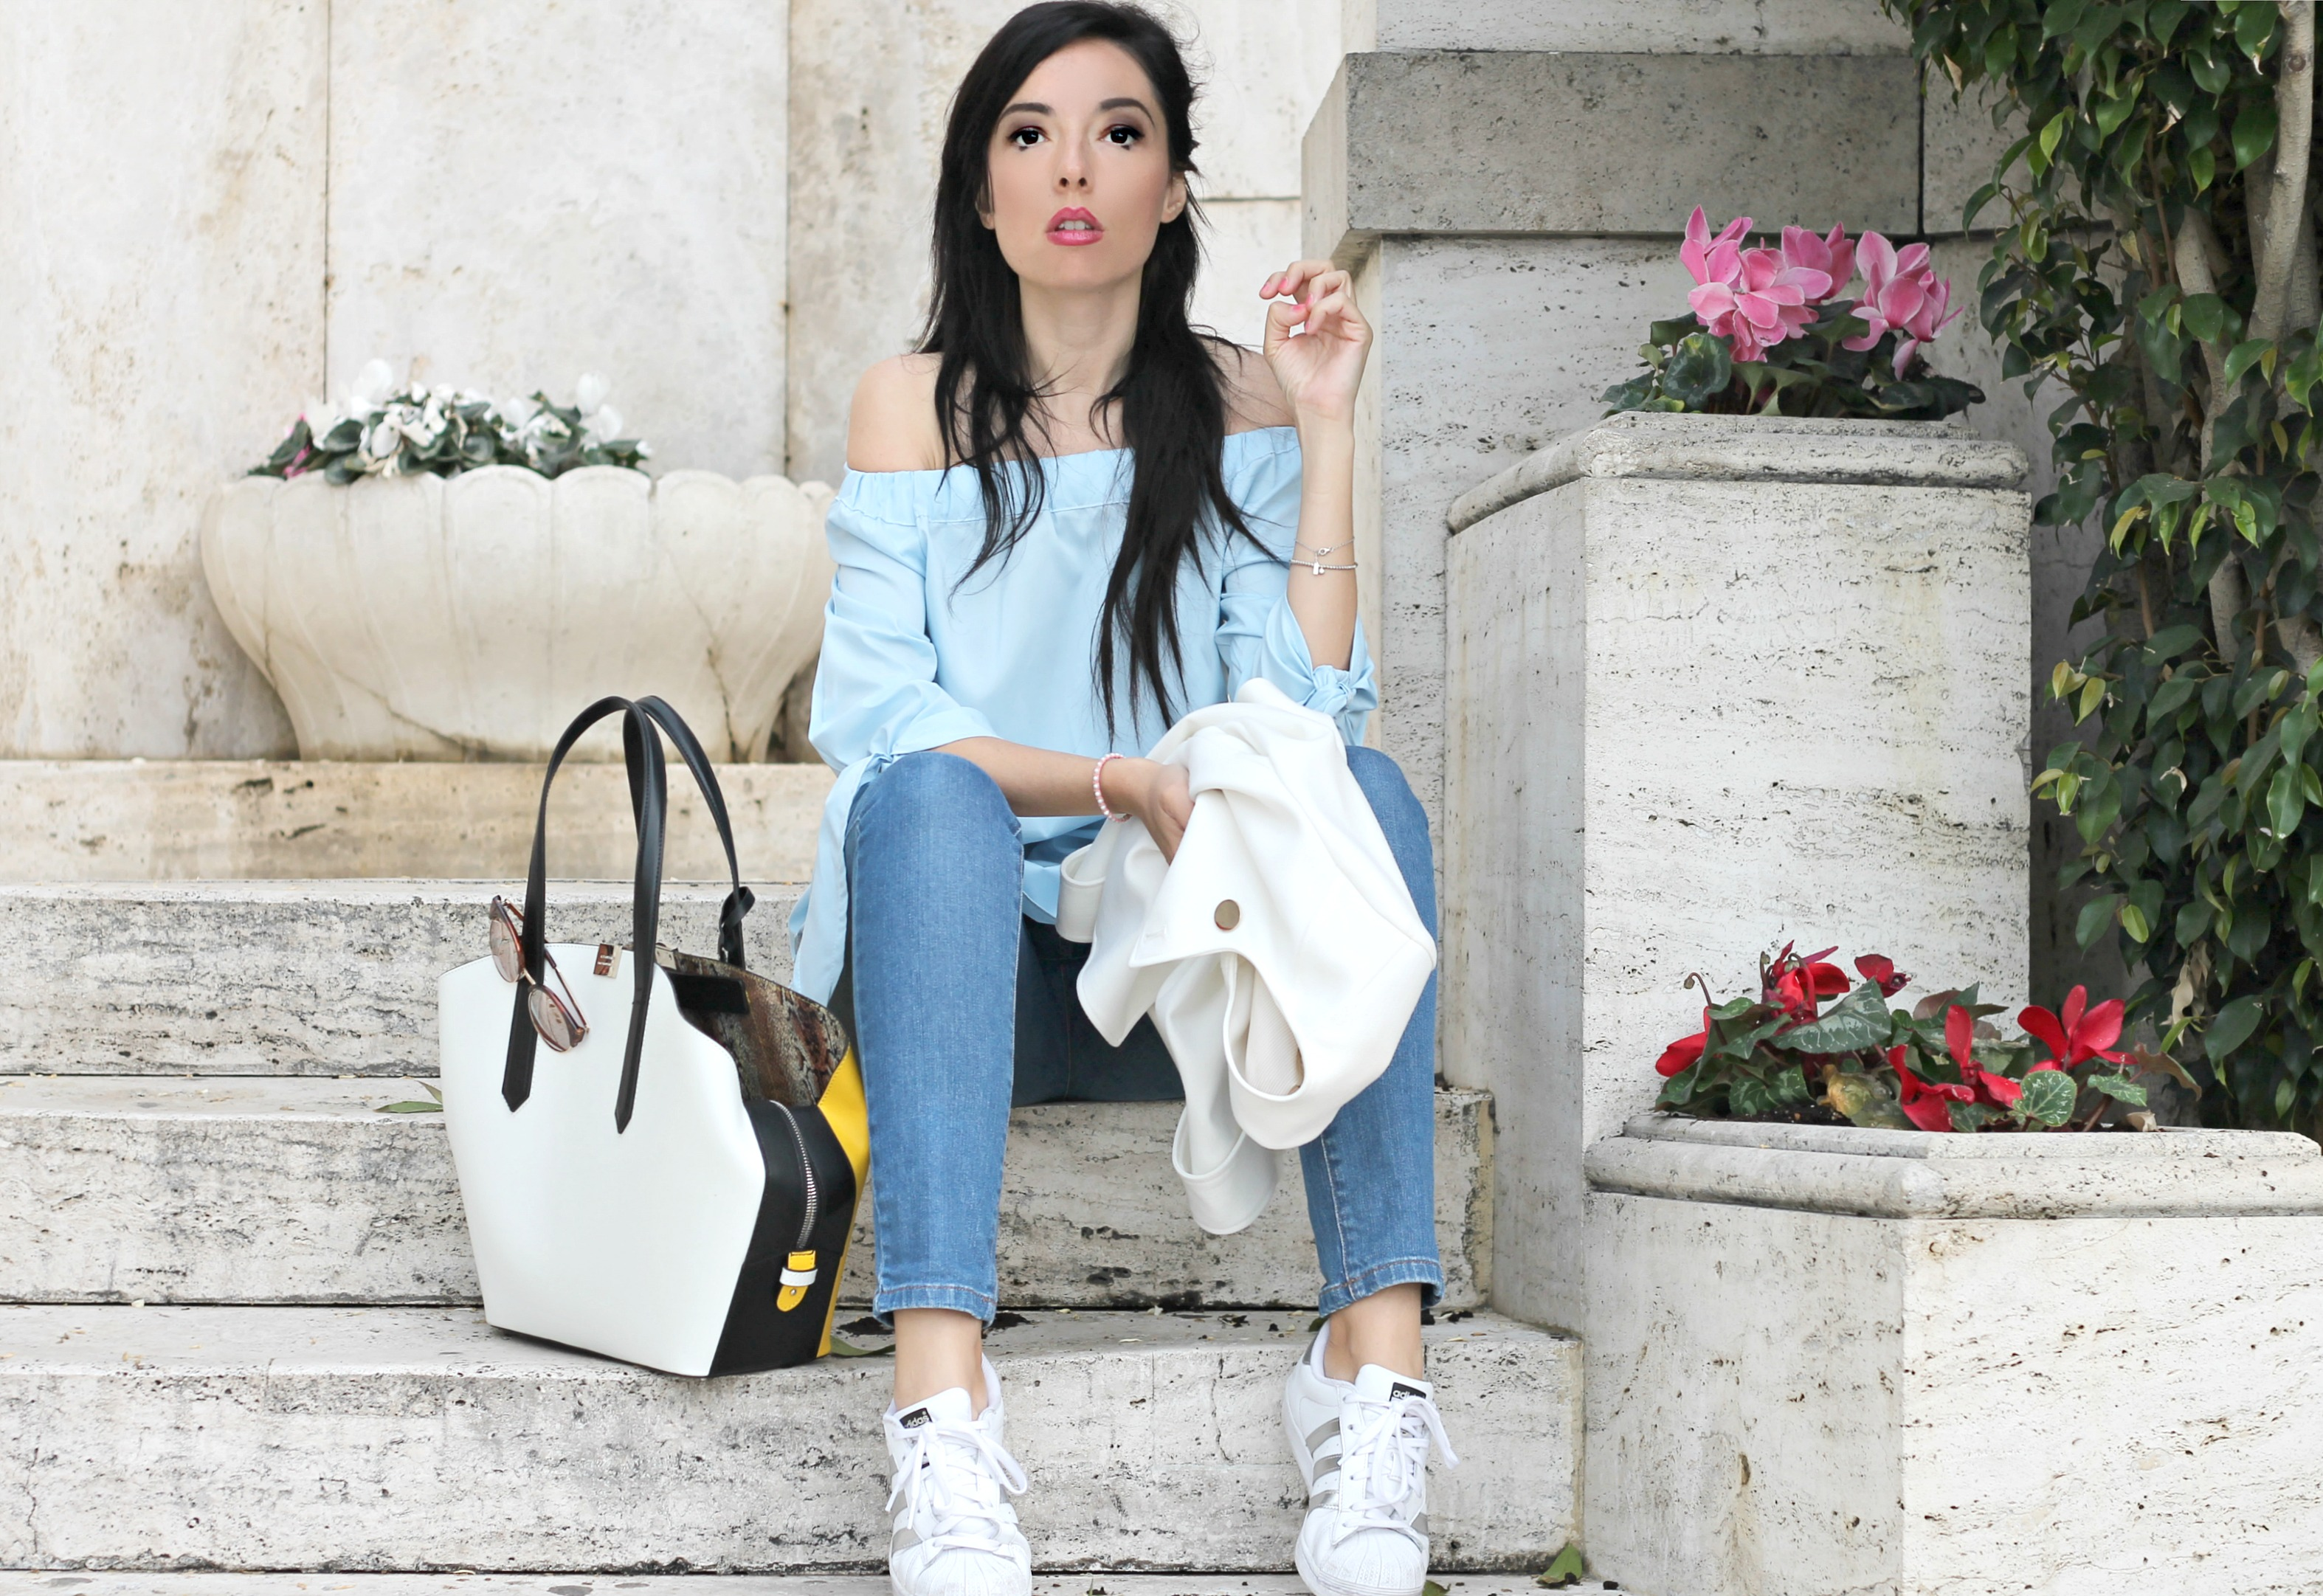 casual chic outfit, casual chic style blogger, elisa bellino, theladycracy.it, cromia bag, cromia borse ss 2016, adidas superstar outfit, spring summer 2016 outfit, fashion blogger italiane famose, fashion blogger famose, fashion bloggers, fashion blog, come vestirsi in primavera, tendenze moda primavera estate 2016, camicia spalle scoperte, off shoulder blouse ss 2016,